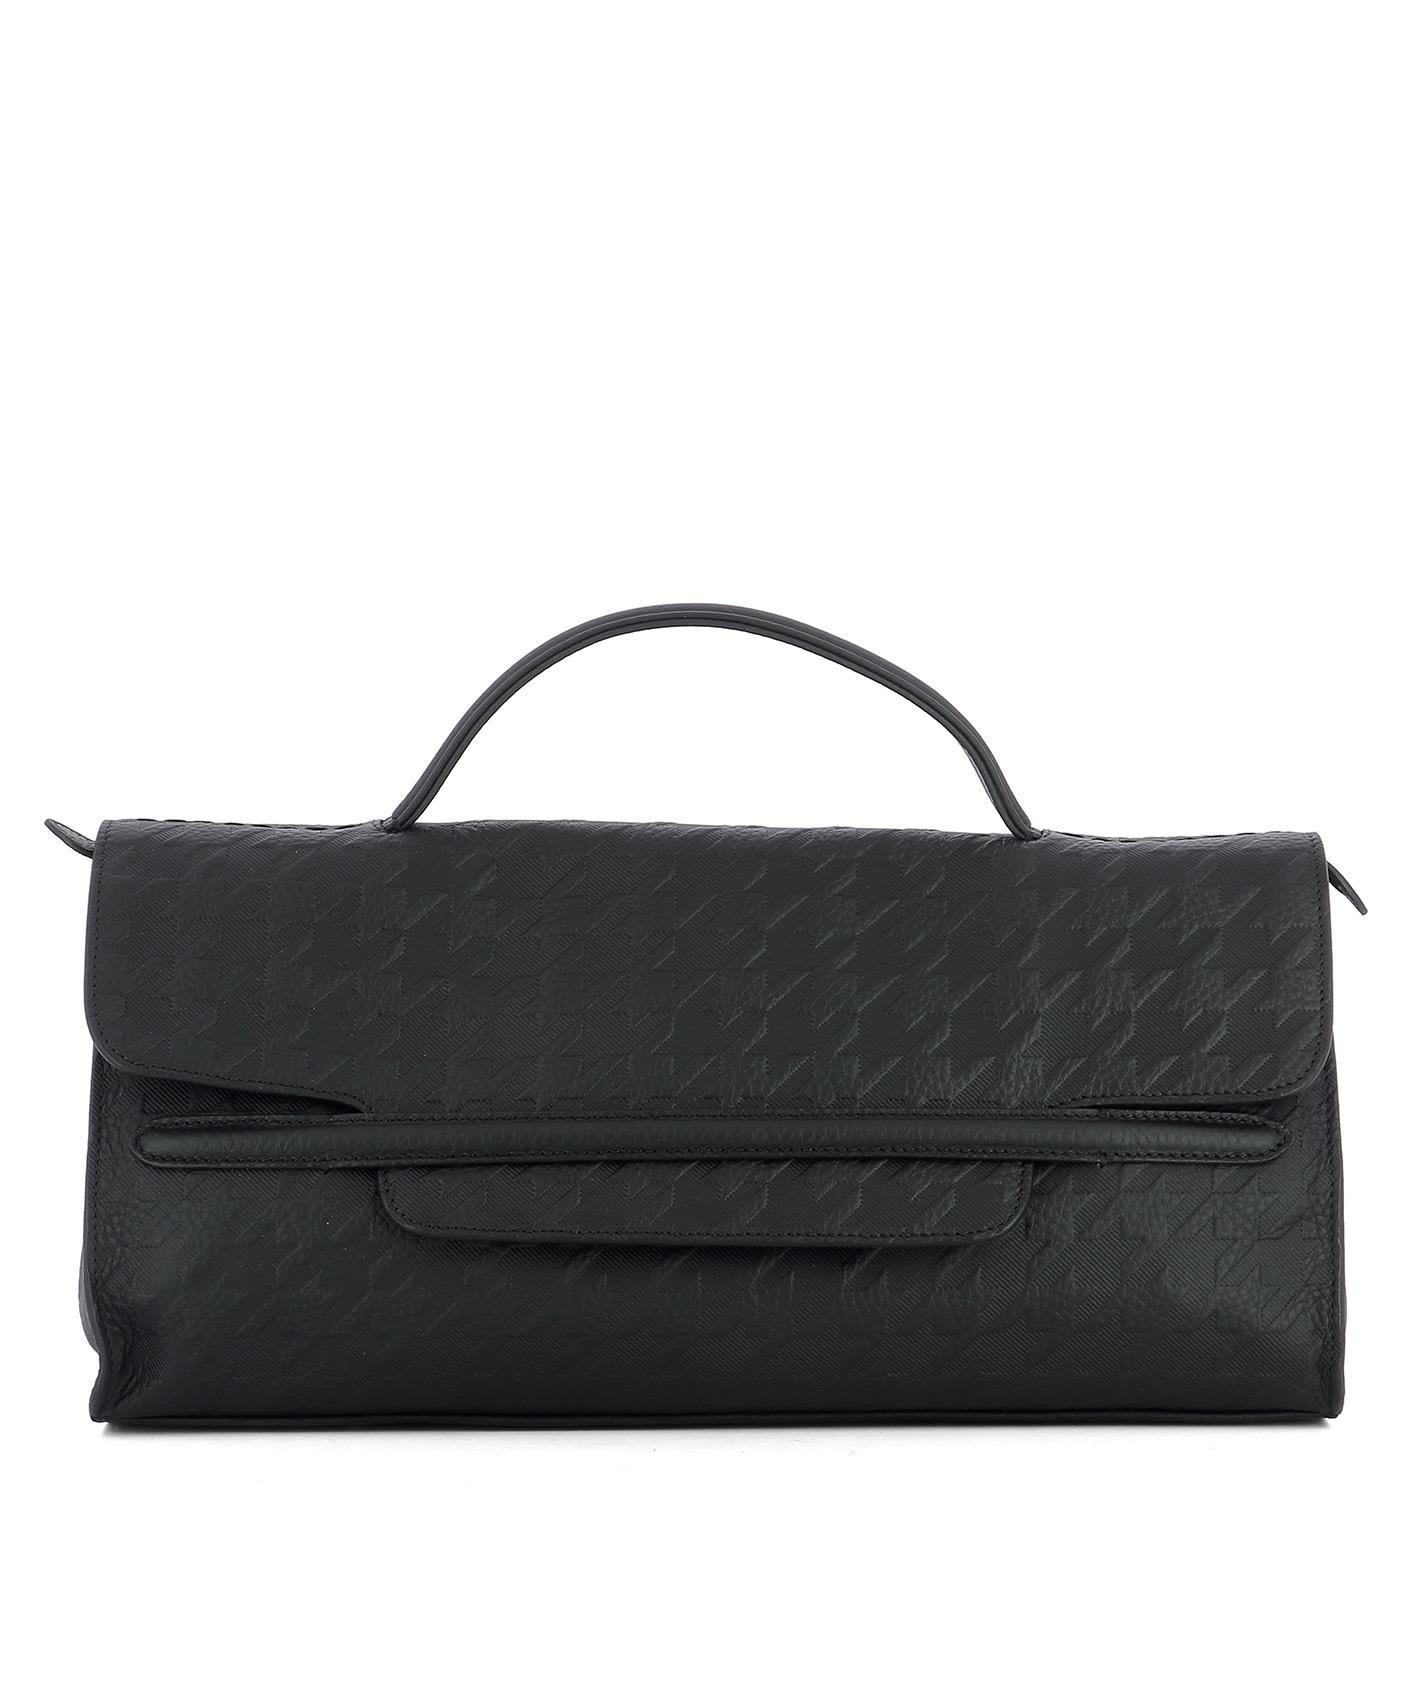 Zanellato Black Leather Handle Bag